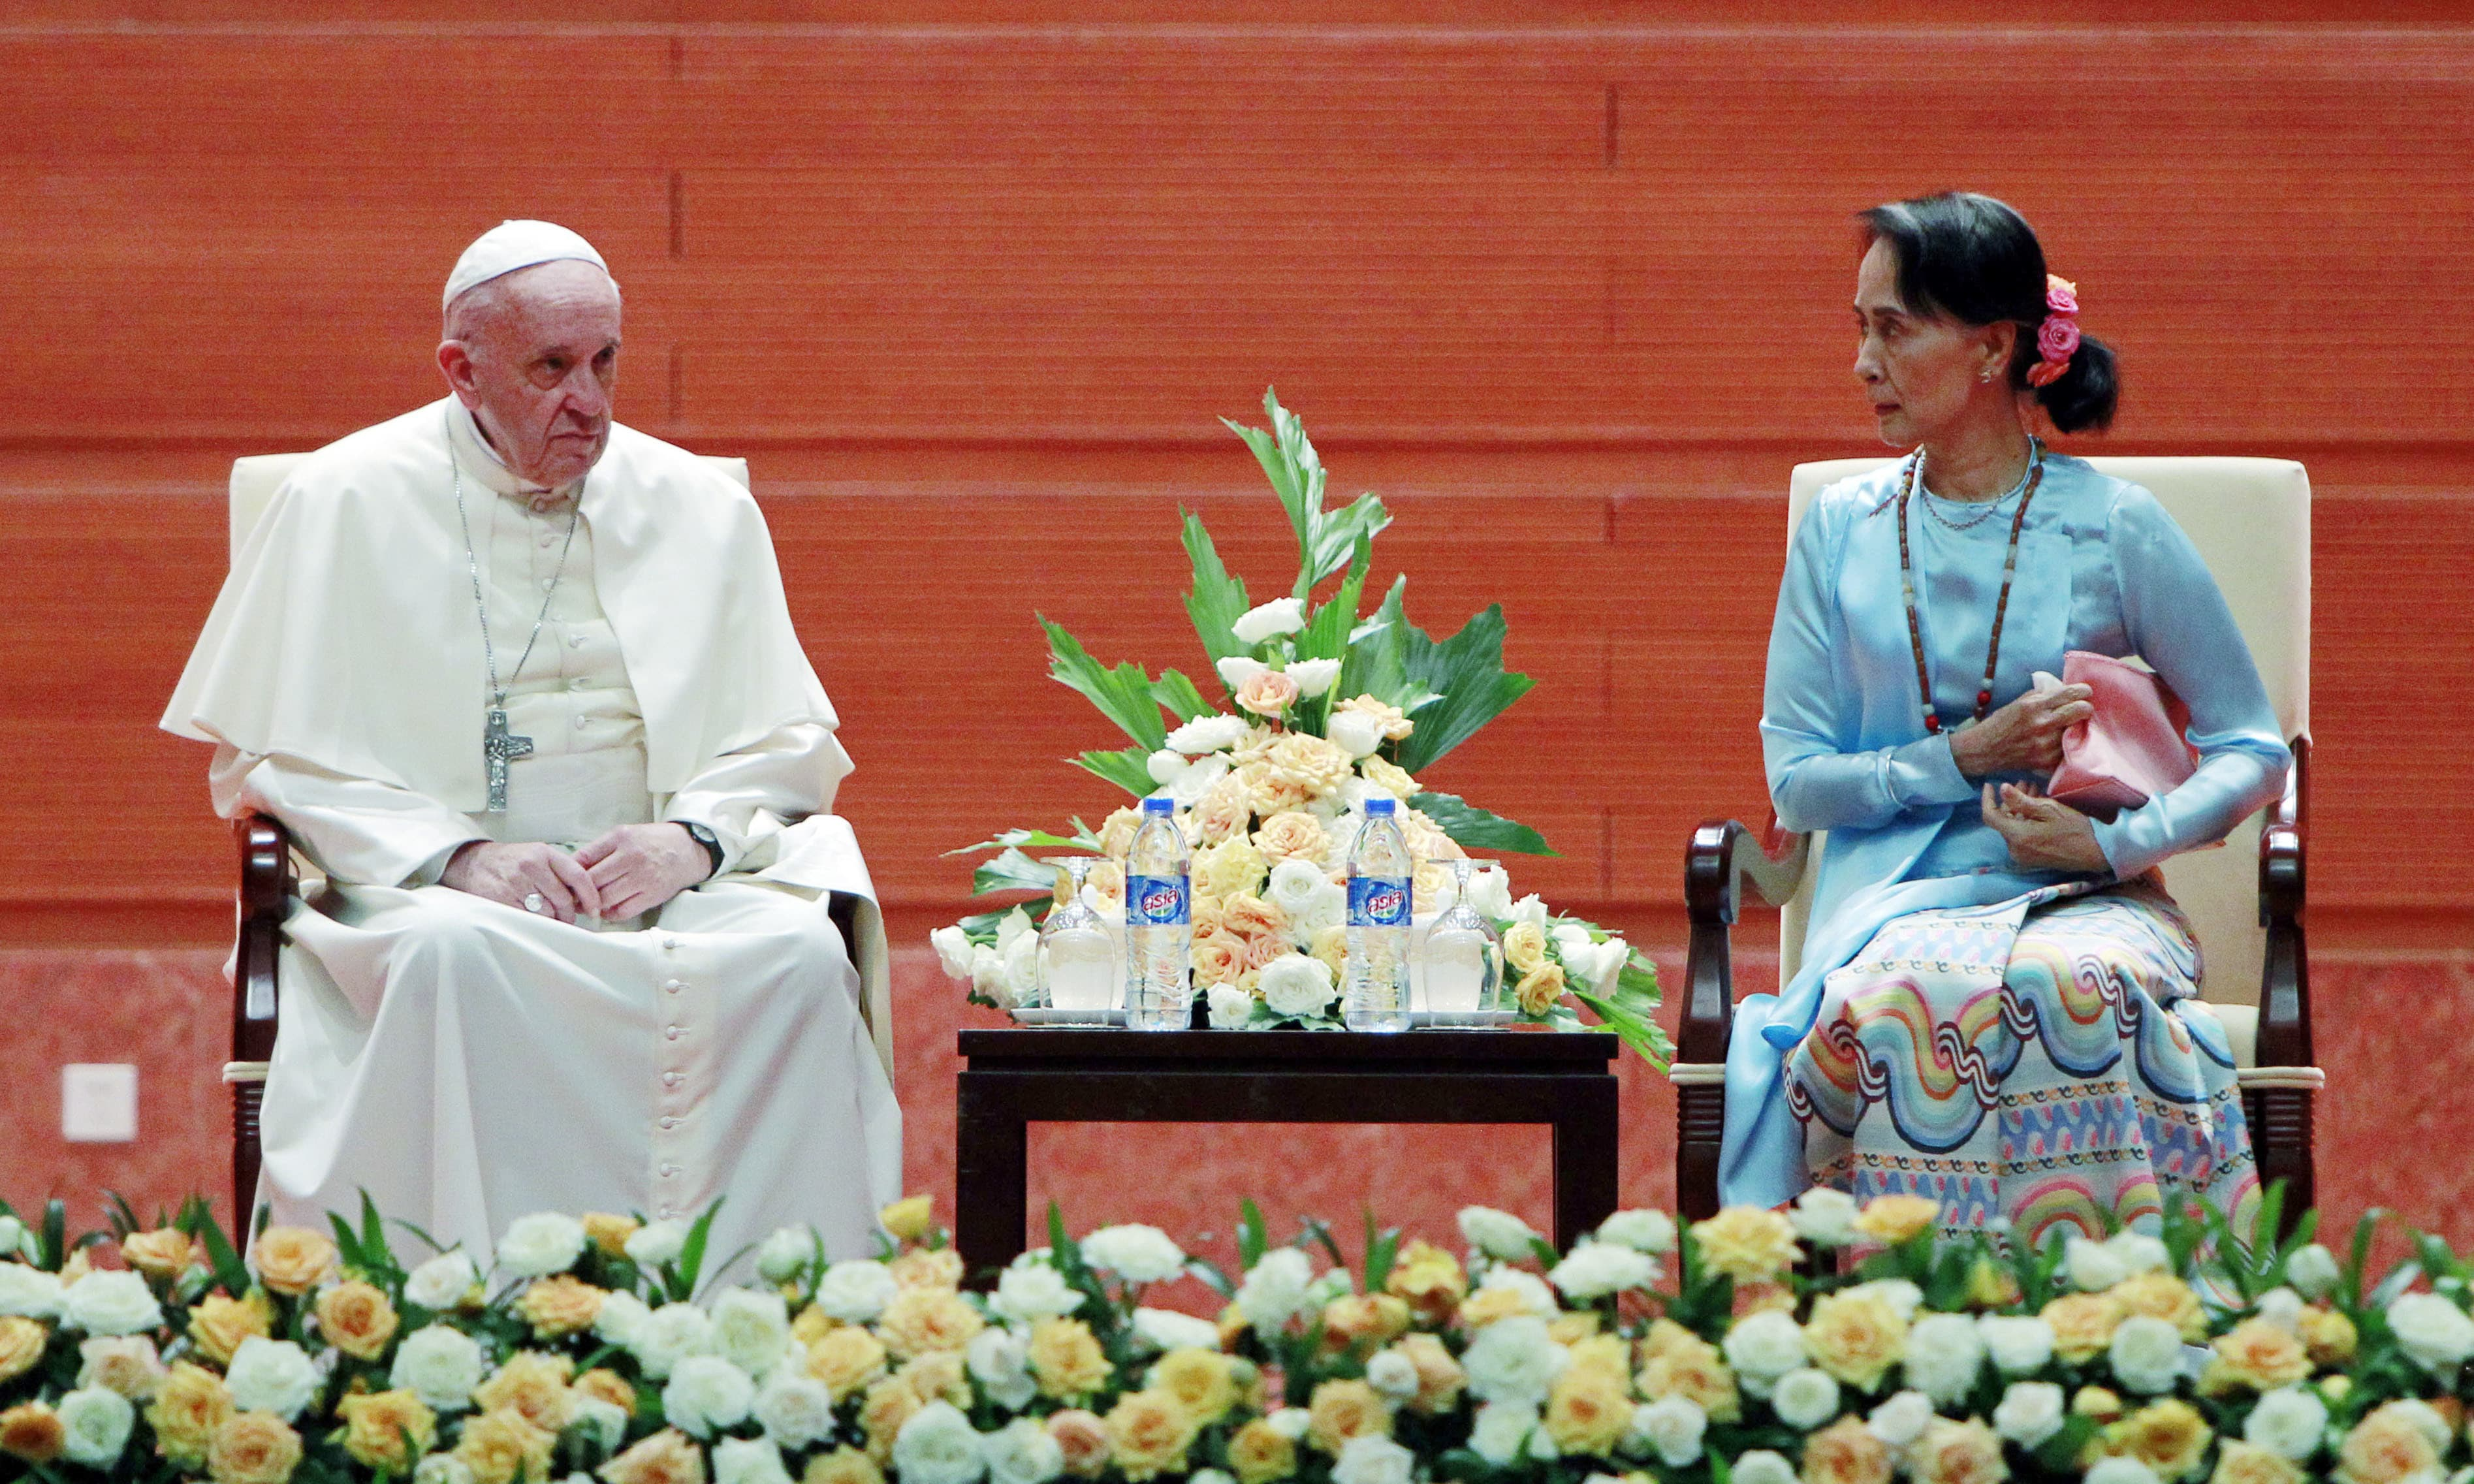 Myanmar's leader Aung San Suu Kyi talks to Pope Francis at a meeting in Naypyitaw, Myanmar. — AP